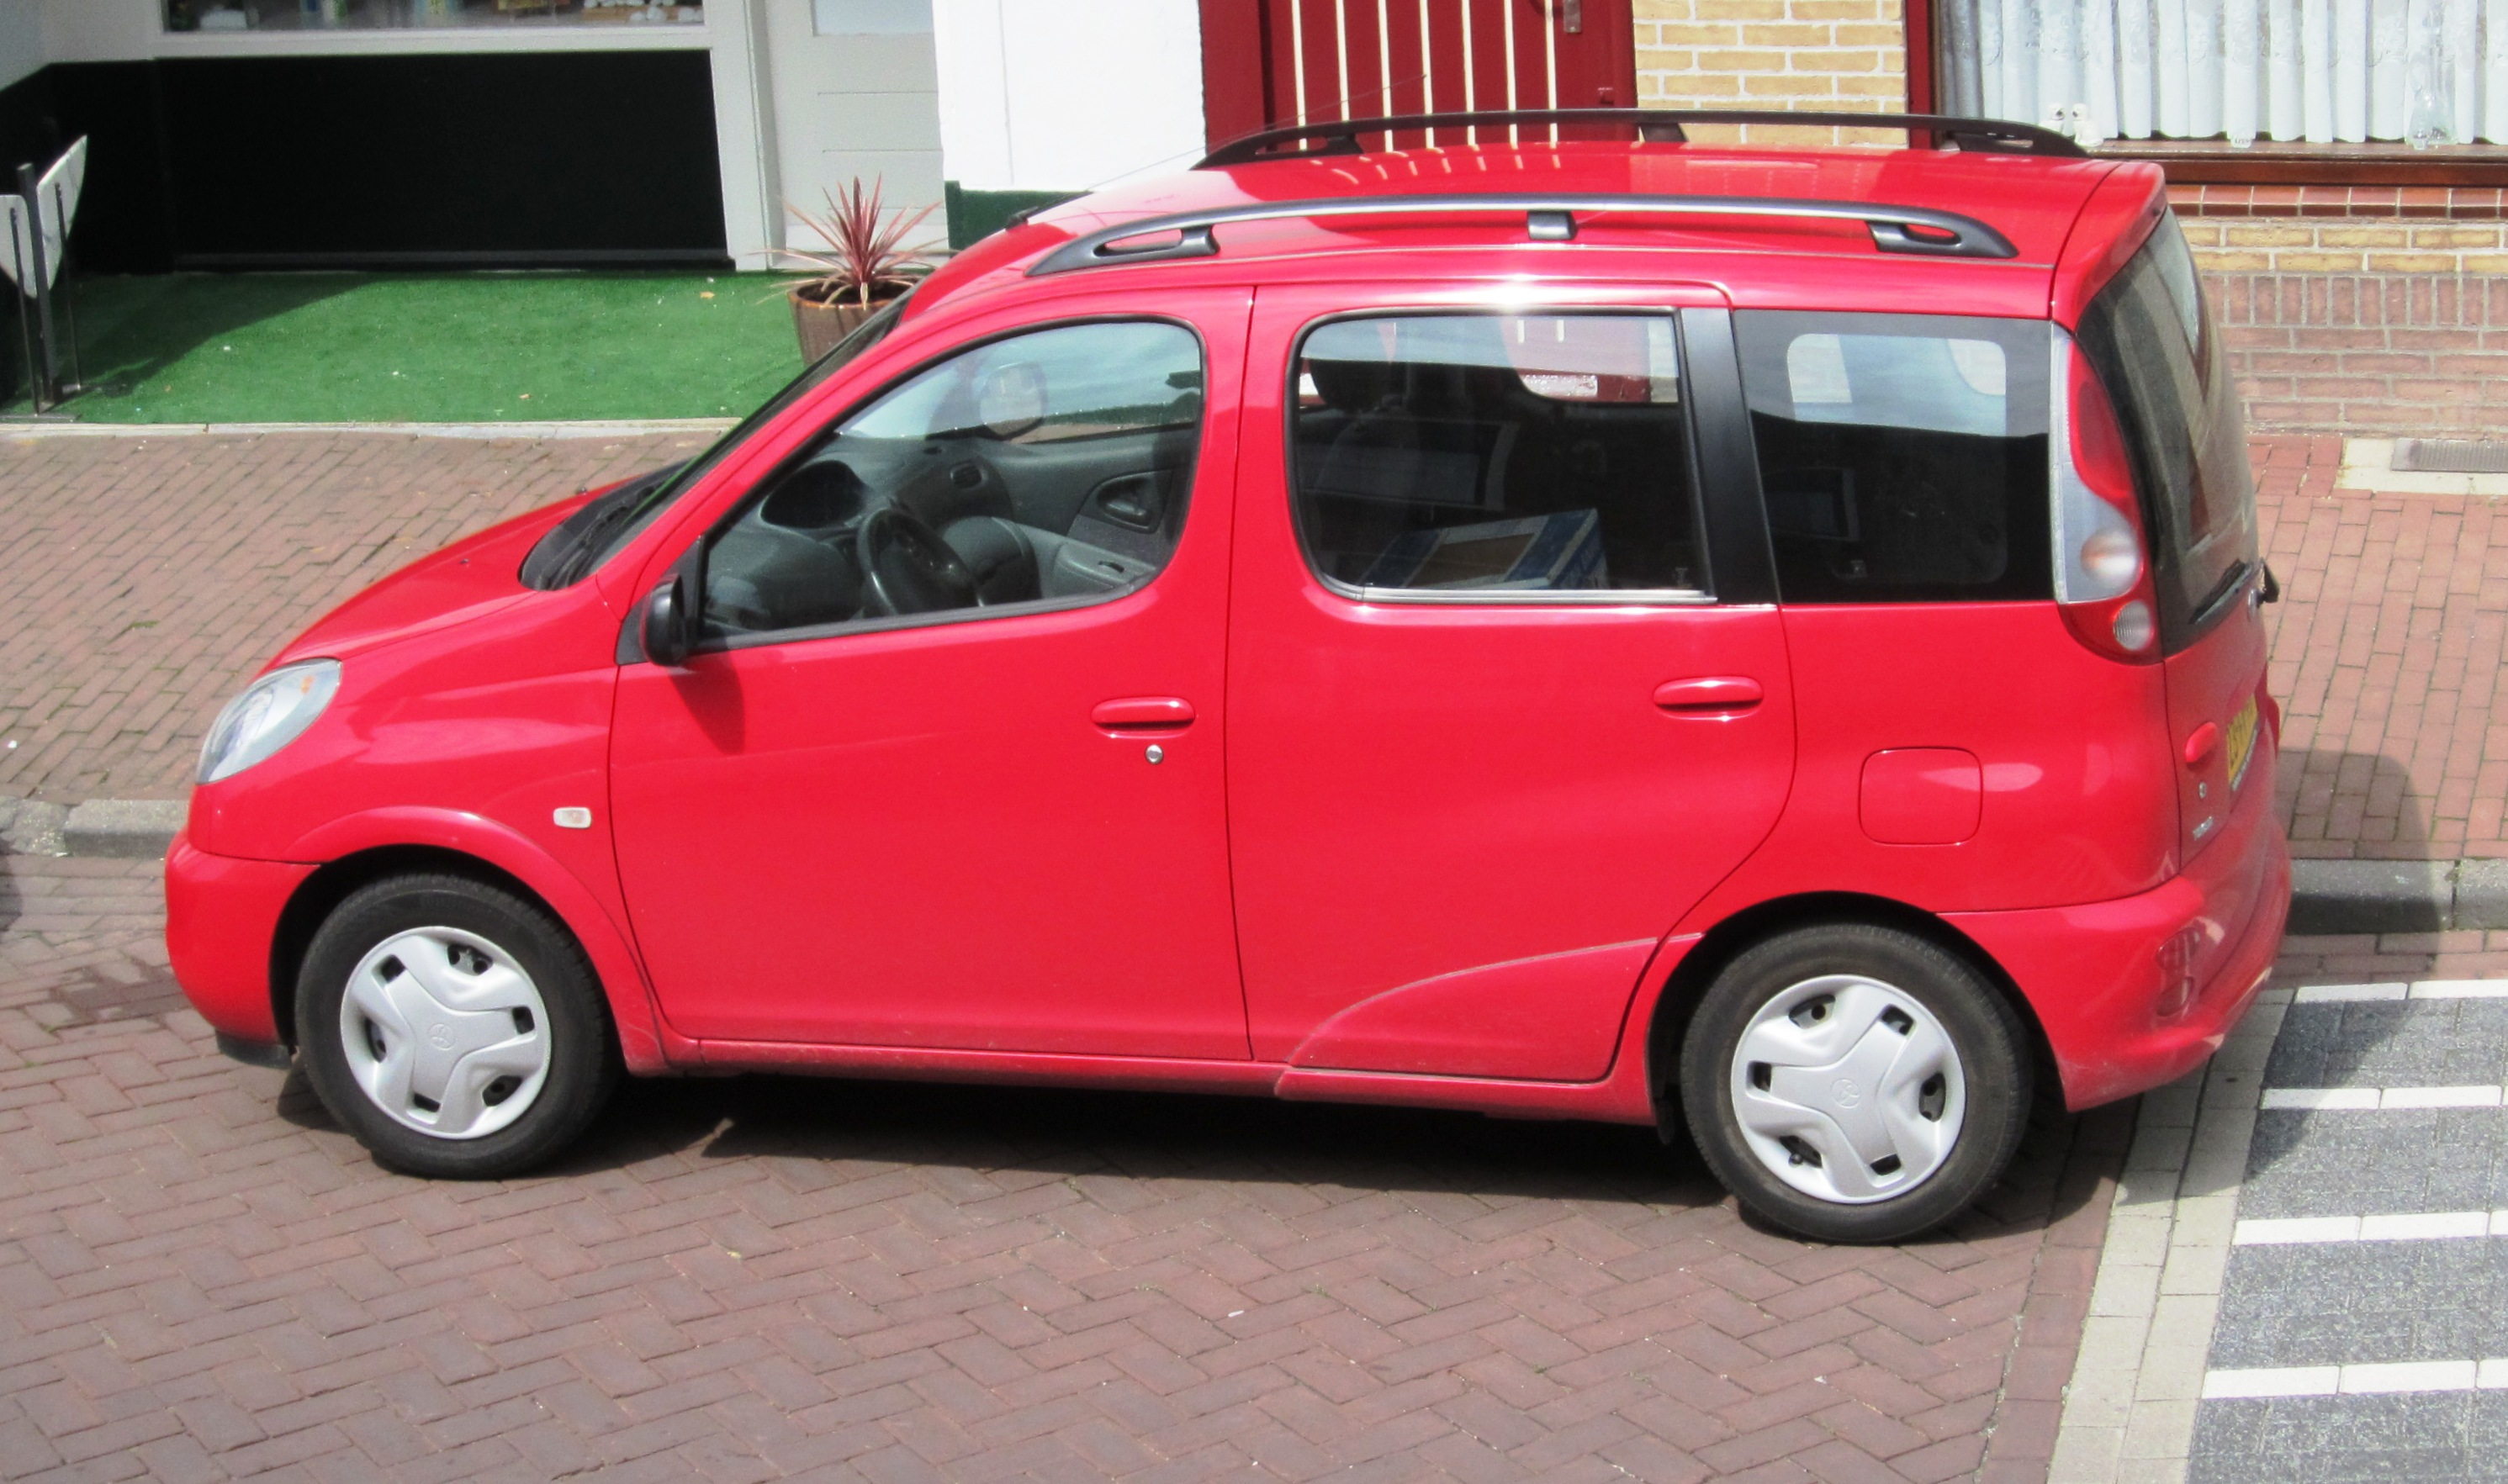 File:Toyota Yaris Break (XP10).jpg - Wikimedia Commons